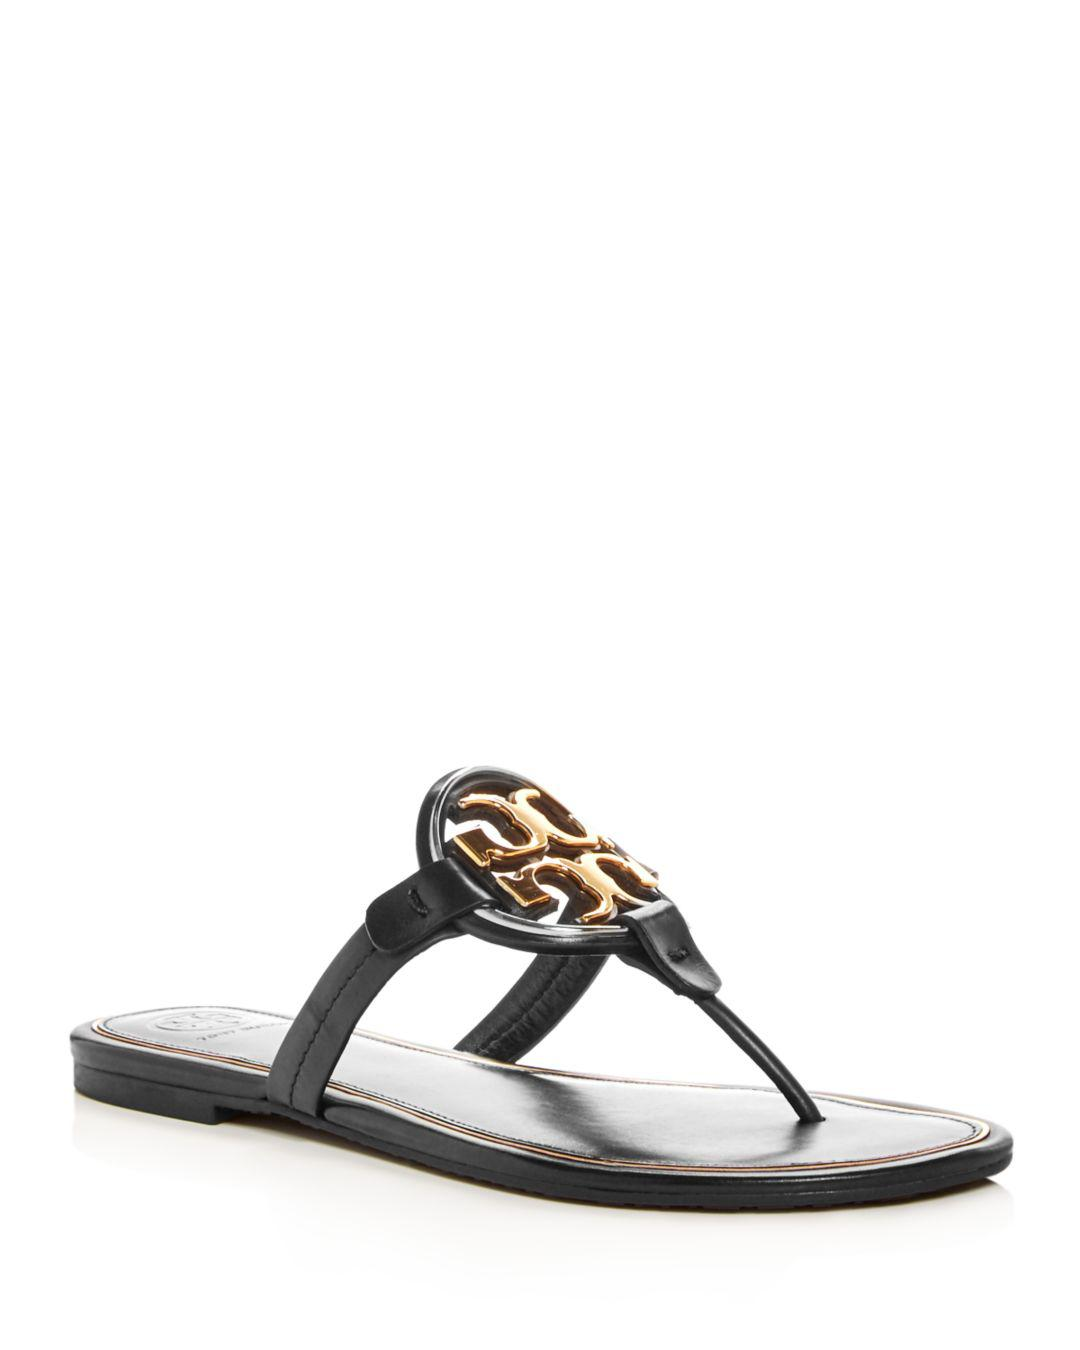 4d811ec9b5ed Lyst - Tory Burch Miller Logo Thongs In Black And Gold Leather in ...